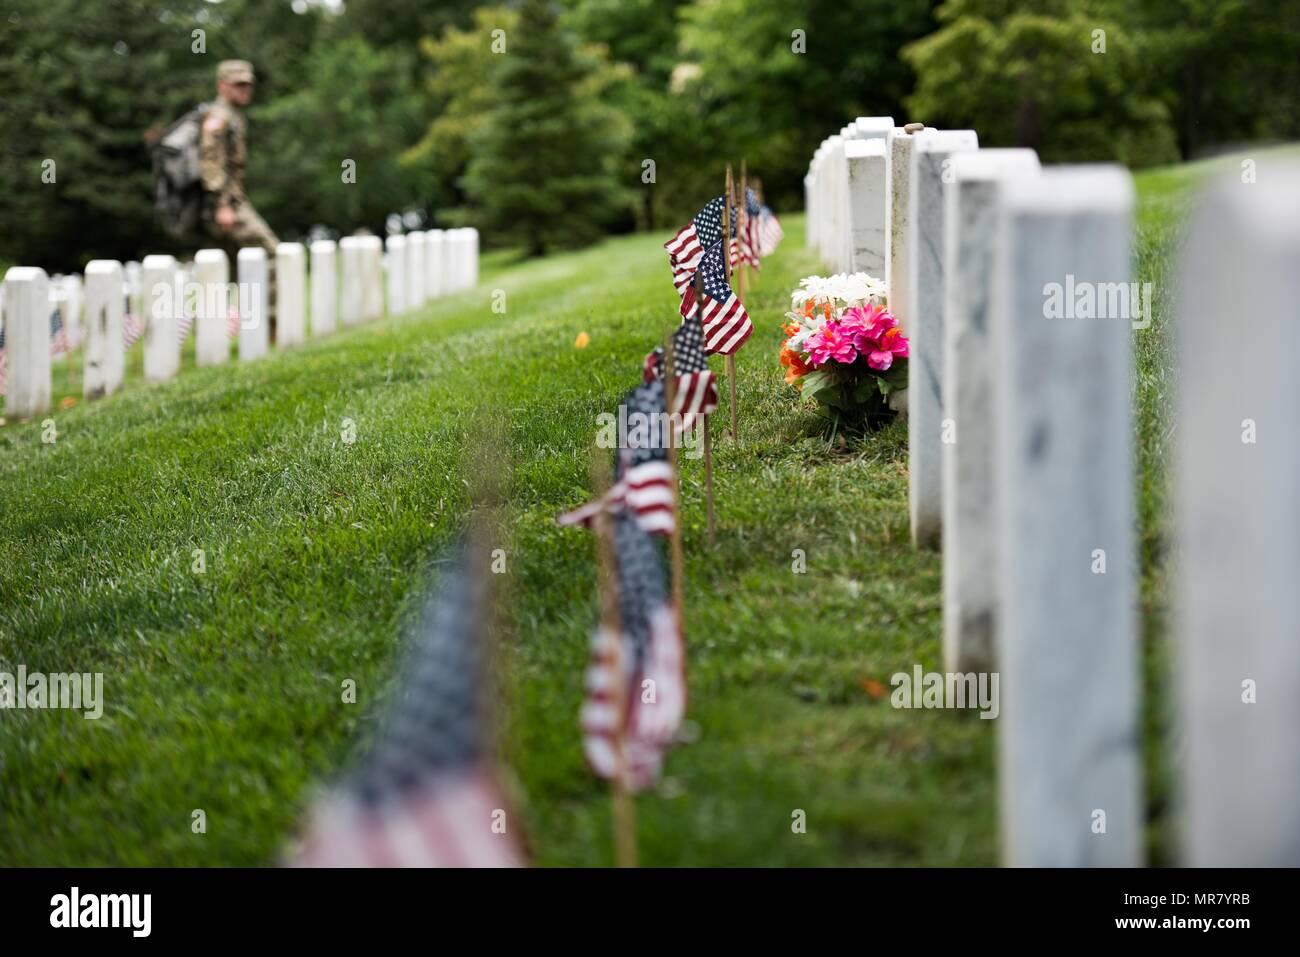 Members of 3d U.S. Infantry Regiment (The Old Guard) place American flags at gravesites in Arlington National Cemetery in Arlington, Va., May 25, 2017.More than 280,000 American flags are placed at each gravesites in ANC before Memorial Day. (U.S. Army photos by Staff Sgt. Terrance D. Rhodes) - Stock Image